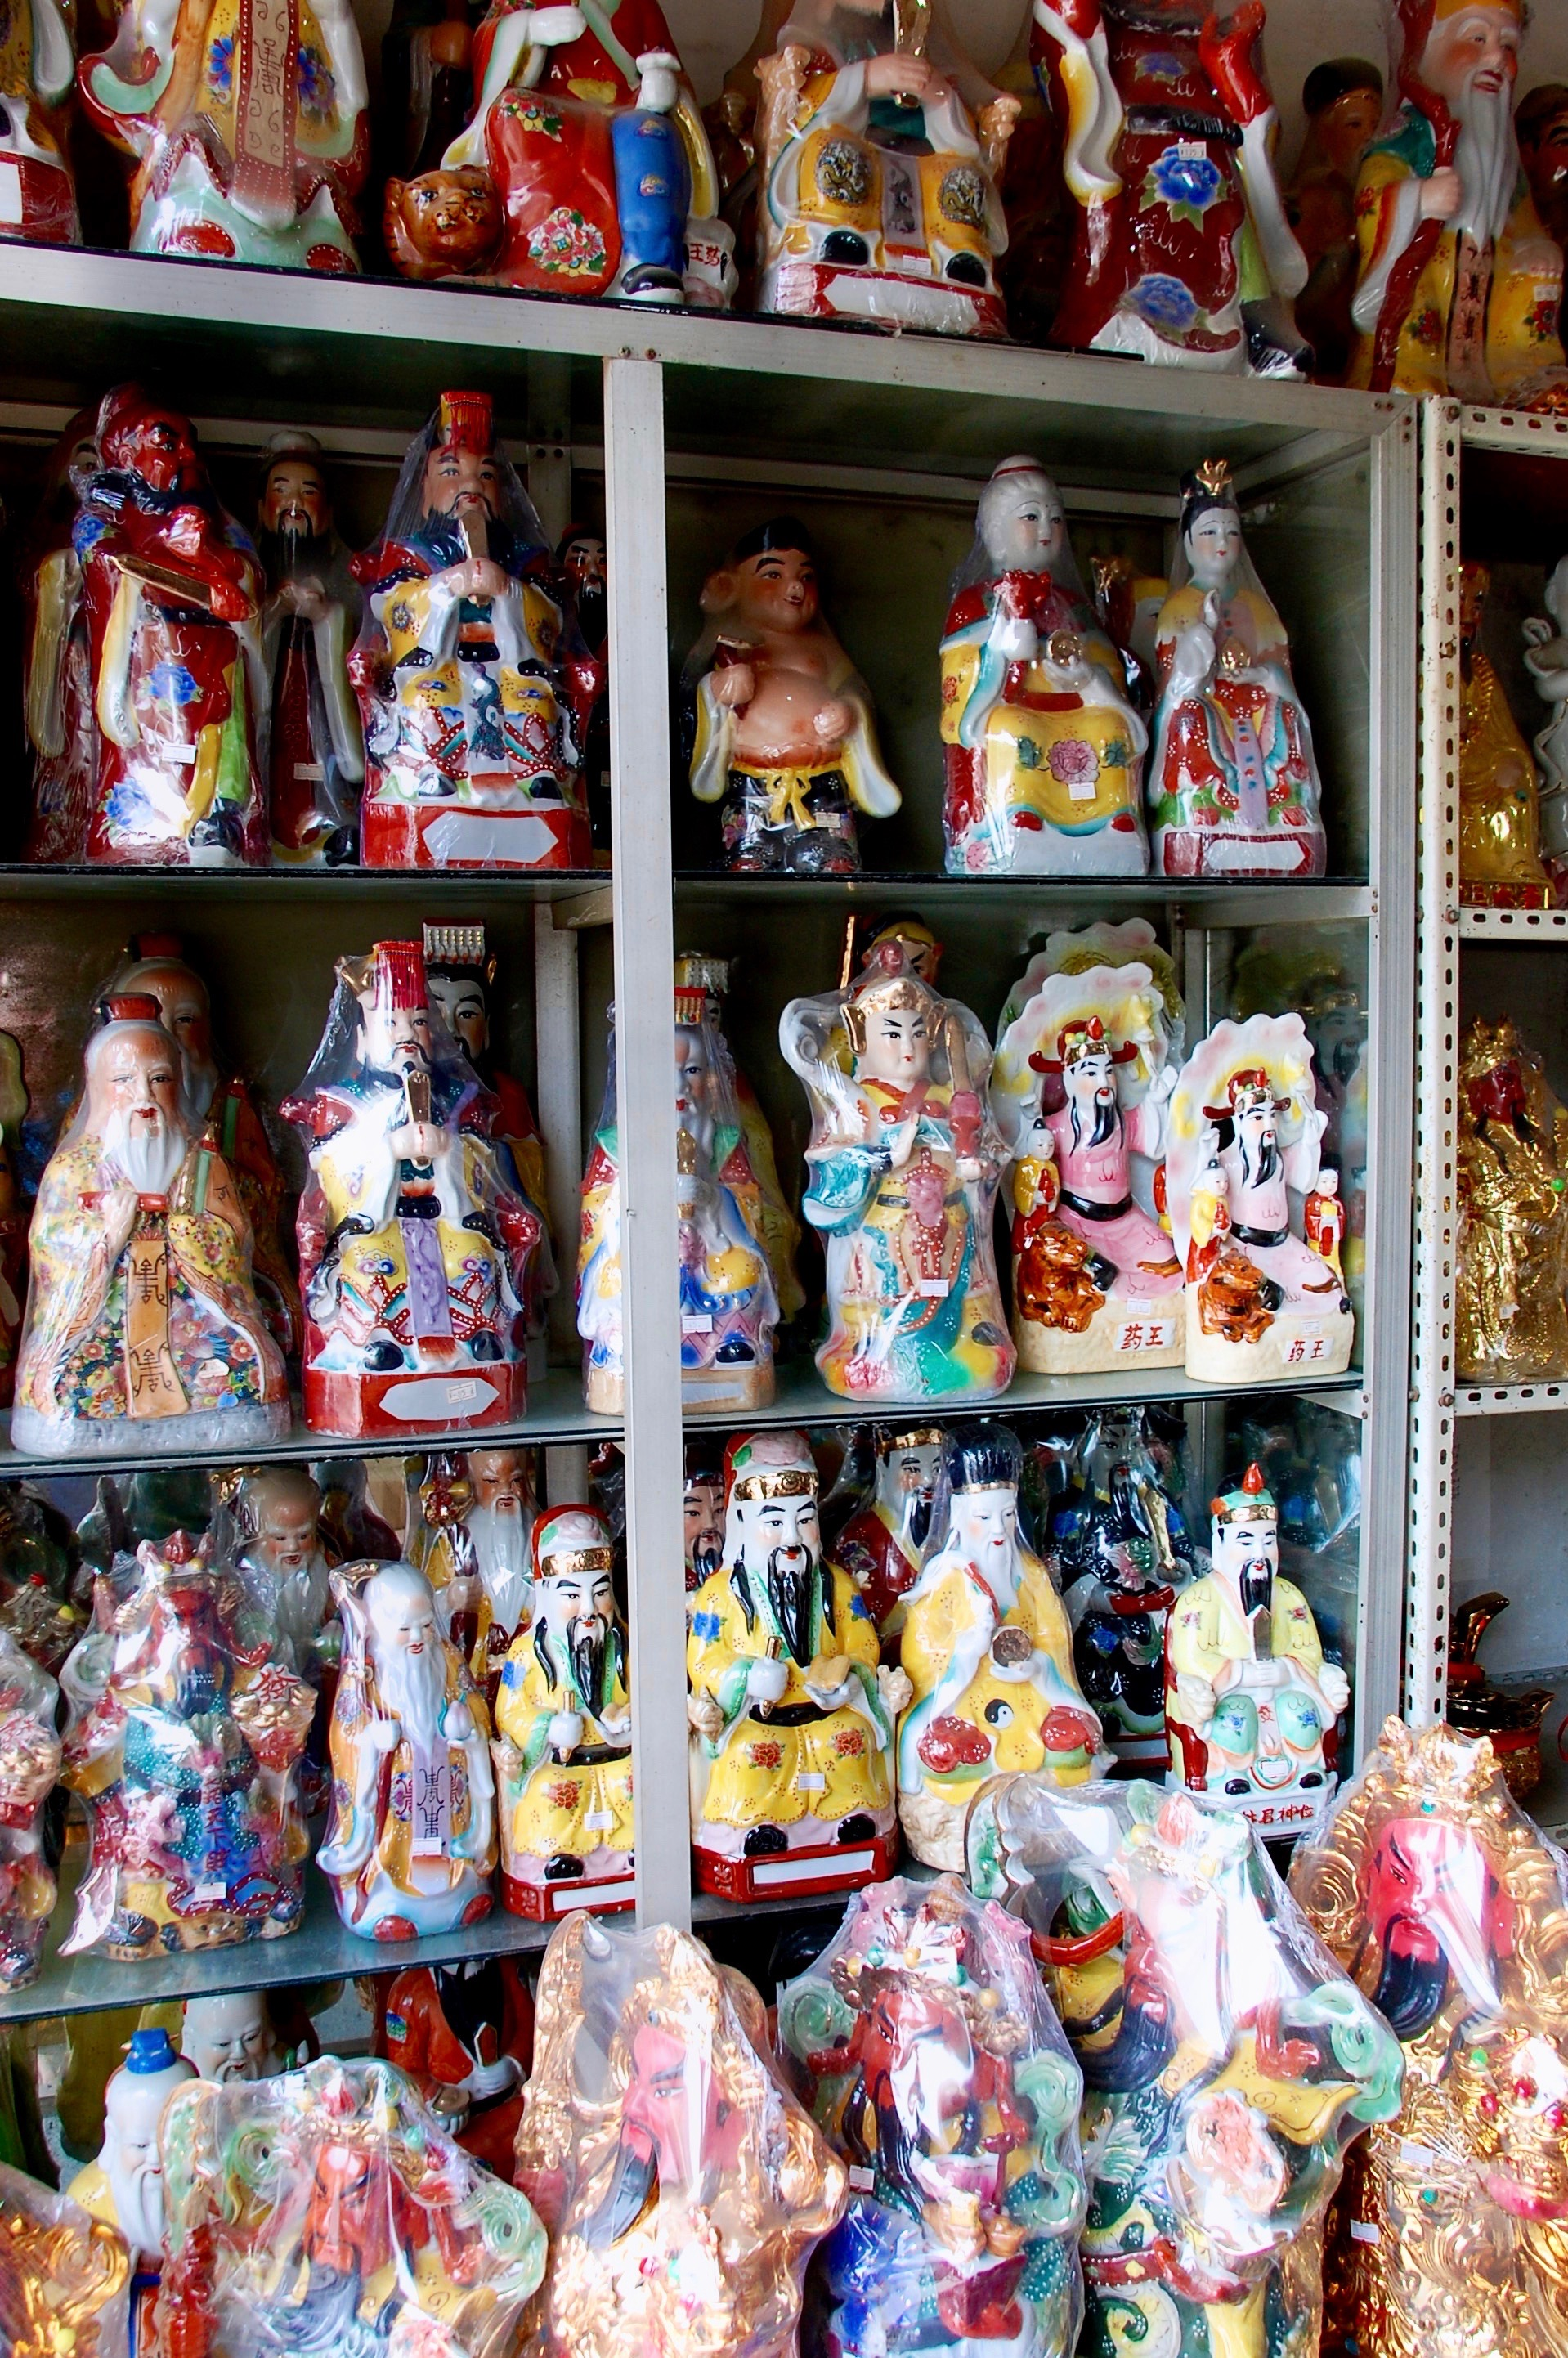 Colorful Taoist deities smile down from the shelves (Henan, China)